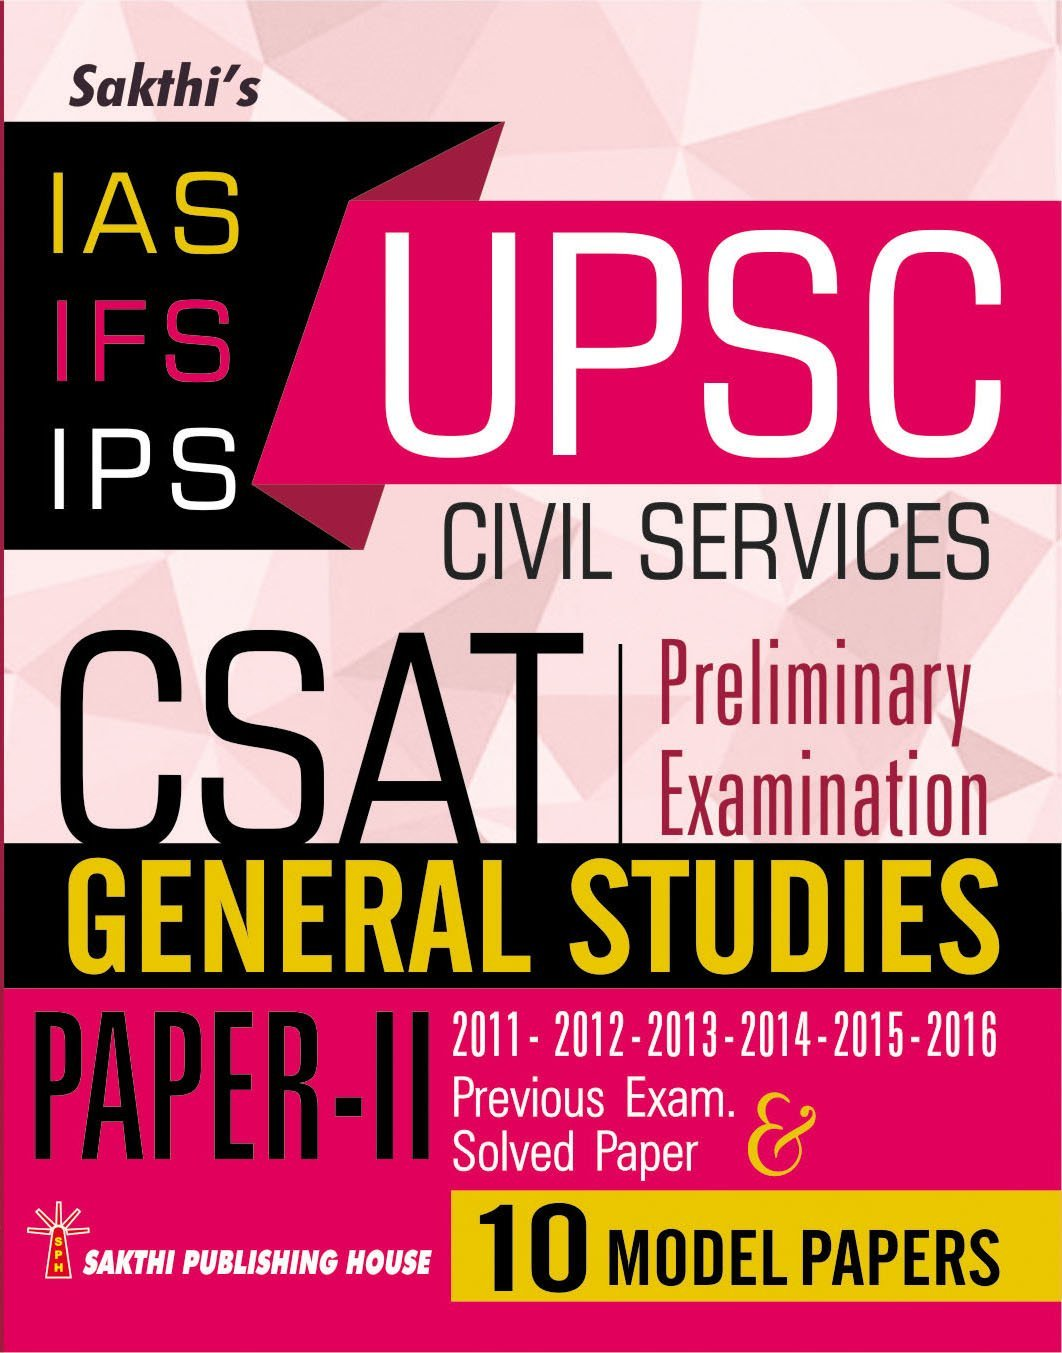 Buy a paper in upsc civil services